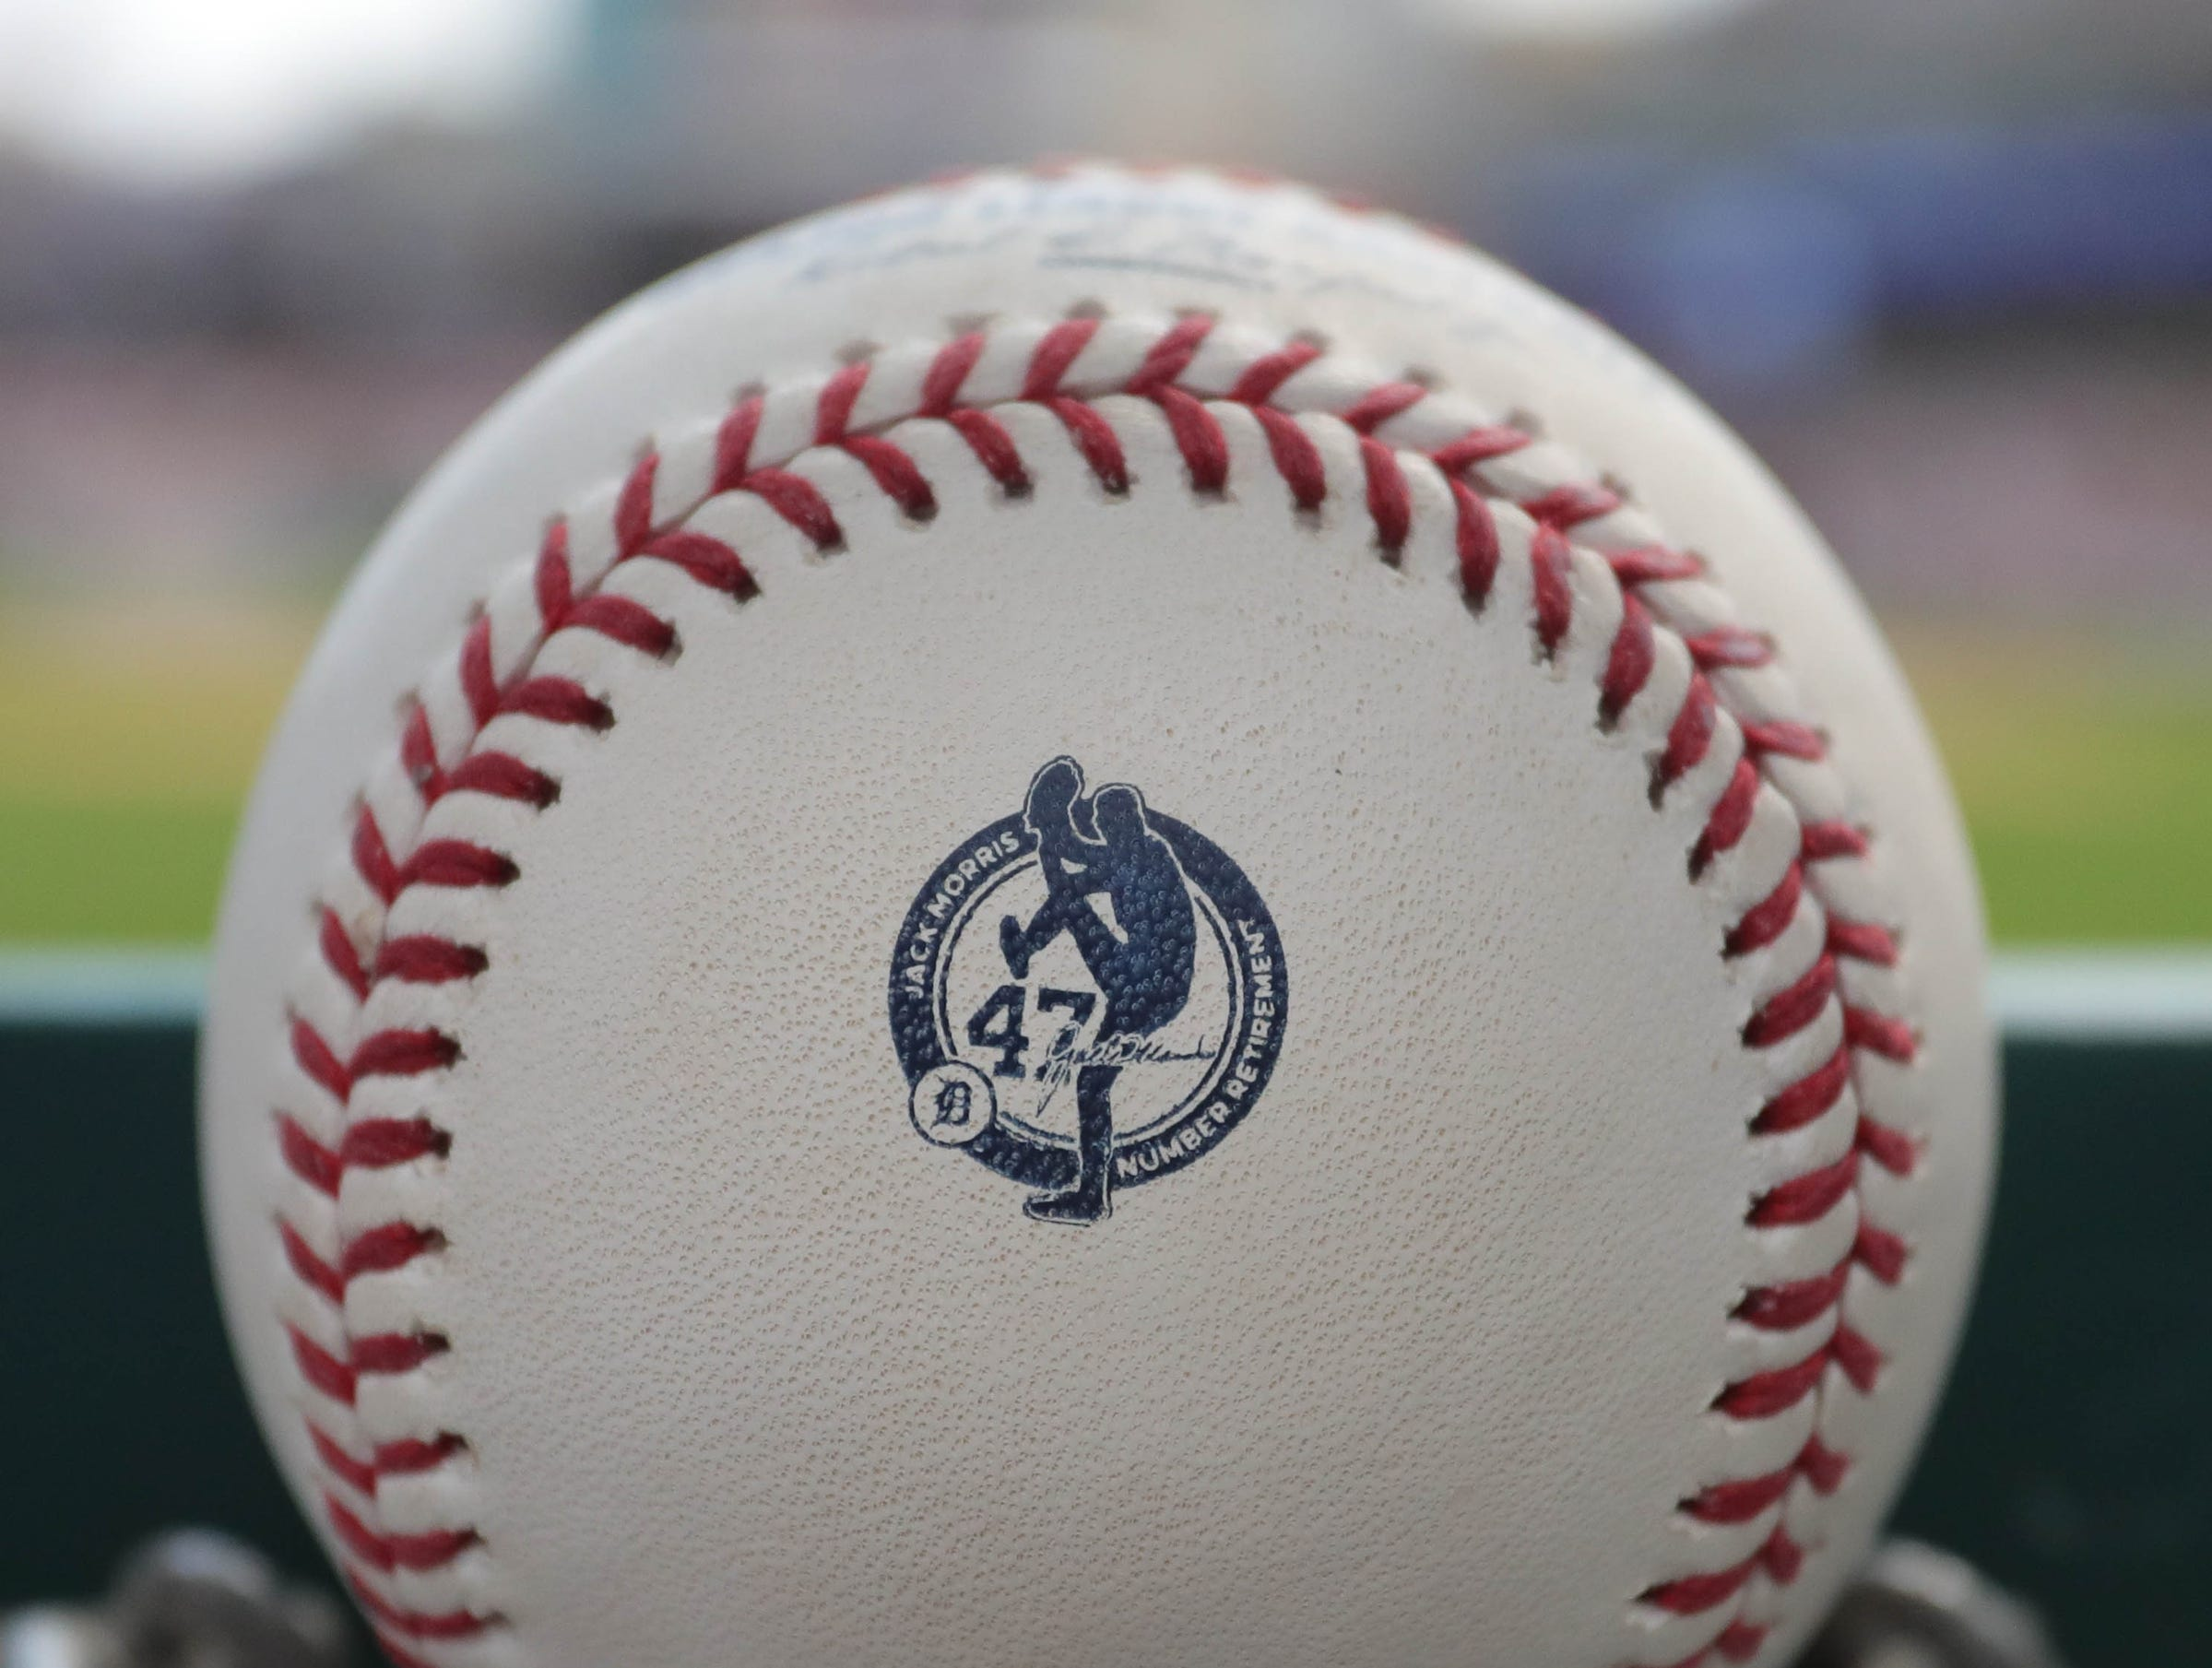 A game ball shows a logo representing Detroit Tiger Hall of Fame pitcher Jack Morris on Sunday, August 12, 2018, at Comerica Park in Detroit.